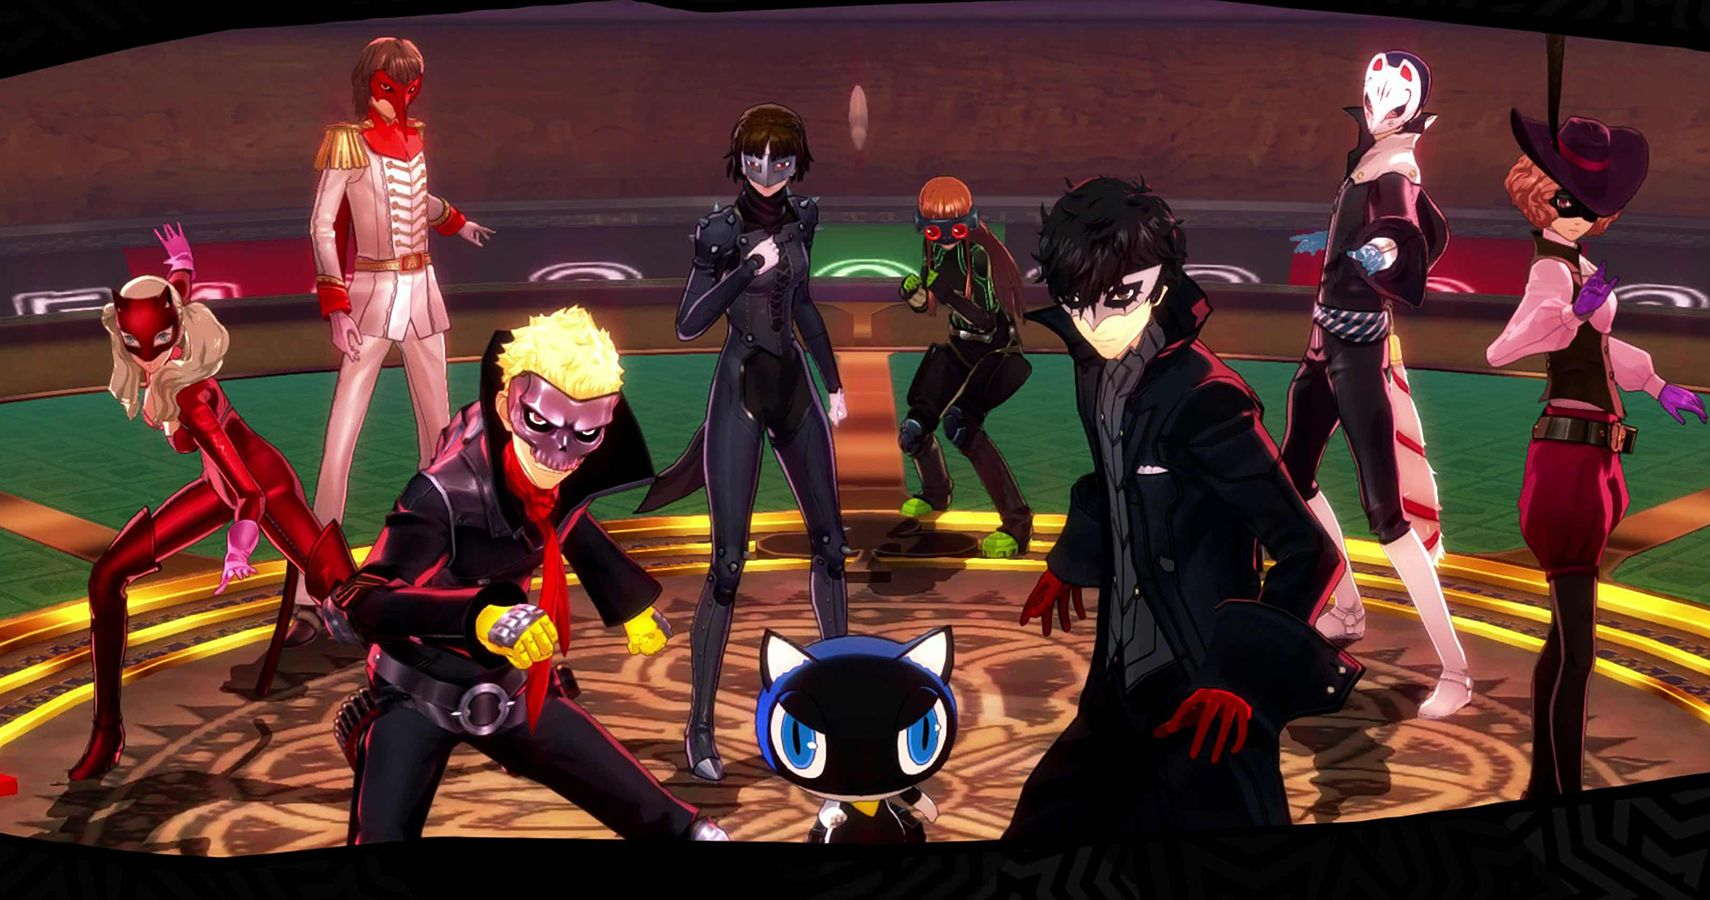 Persona 5 Christmas Gifts.Persona 5 Gift Guide Every Confidant And The Gift They Want